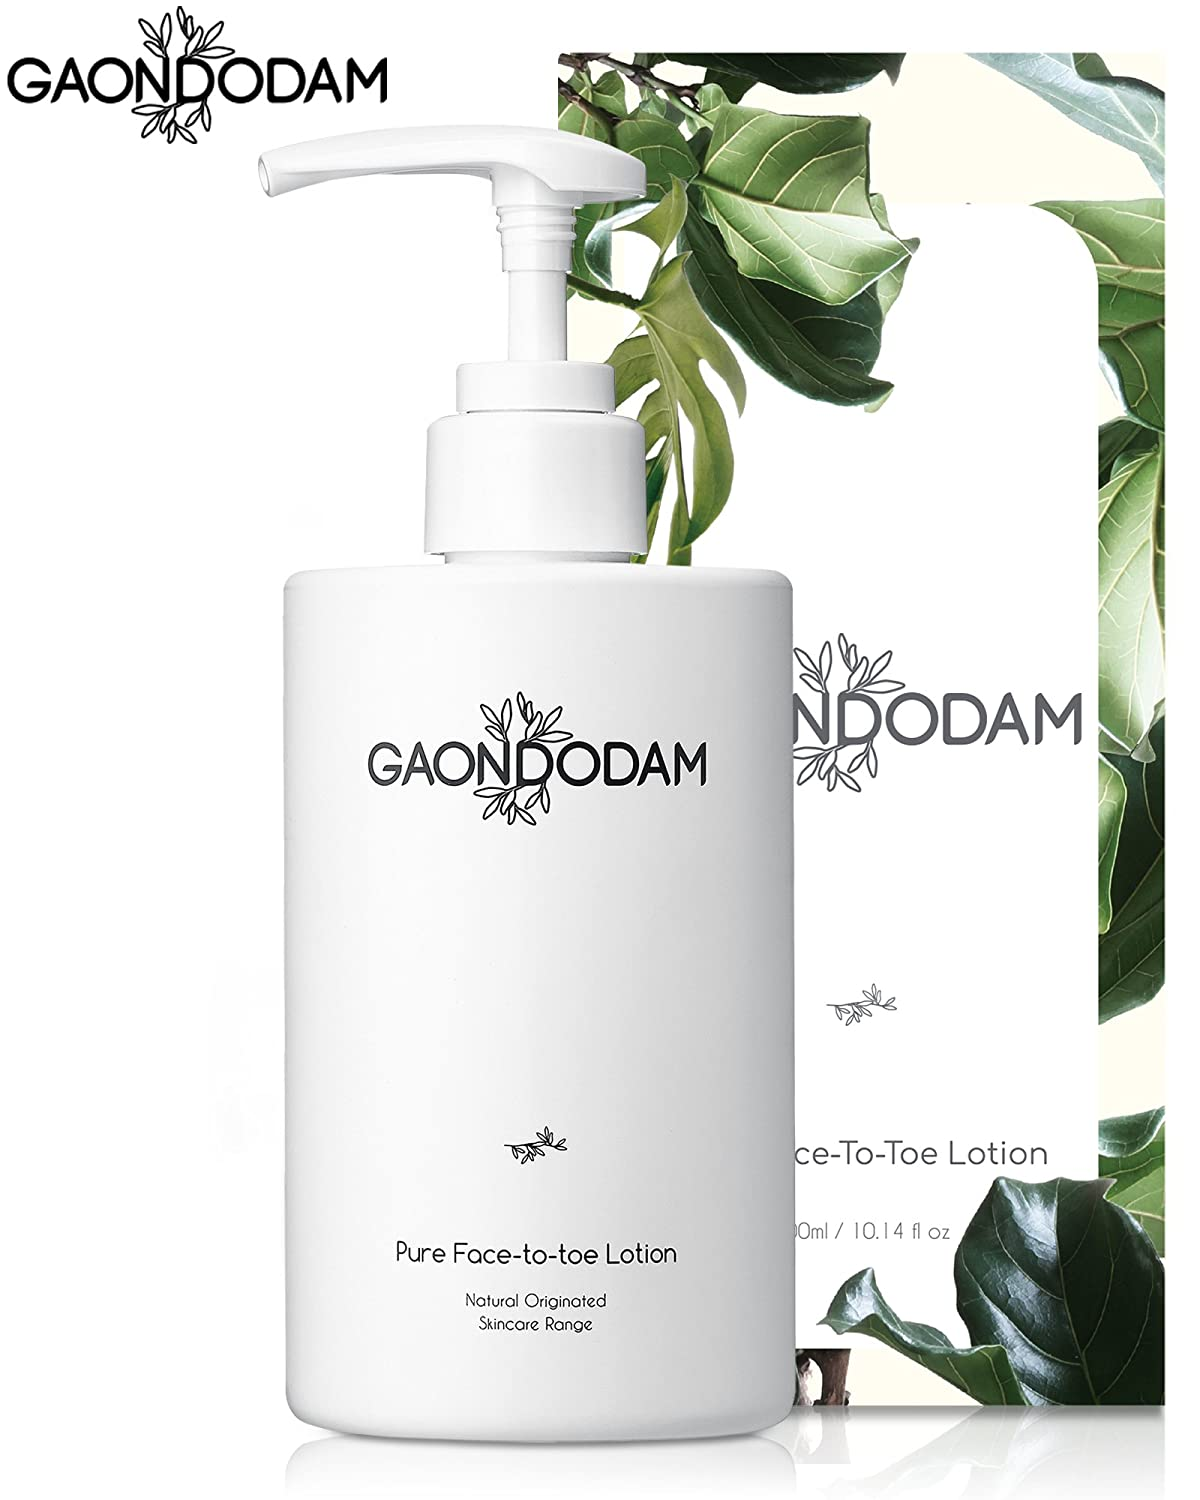 [GAONDODAM] Daily Moisturizing Body Lotion for Dry Skin, Shea Butter Advanced Intensive Moisturizer Cream for Pure Face to Toes (300 ml/ 10.14 fl.oz)